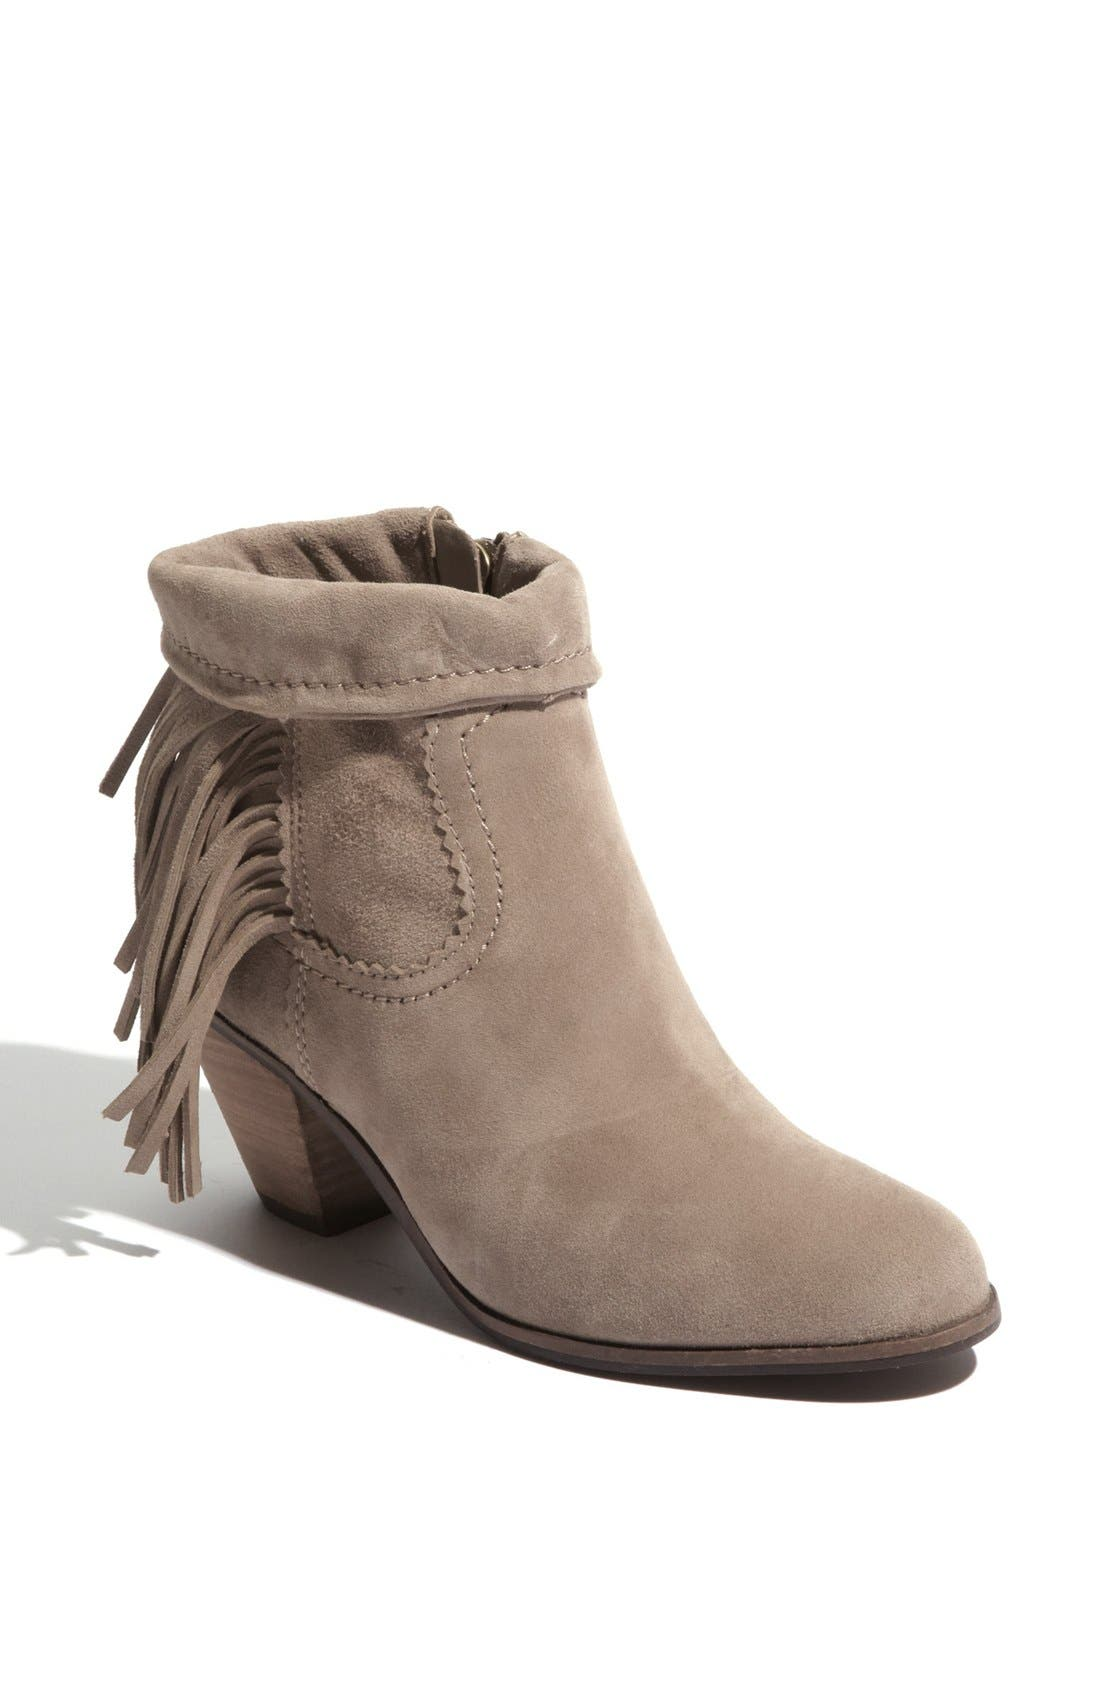 Main Image - Sam Edelman 'Louie' Boot